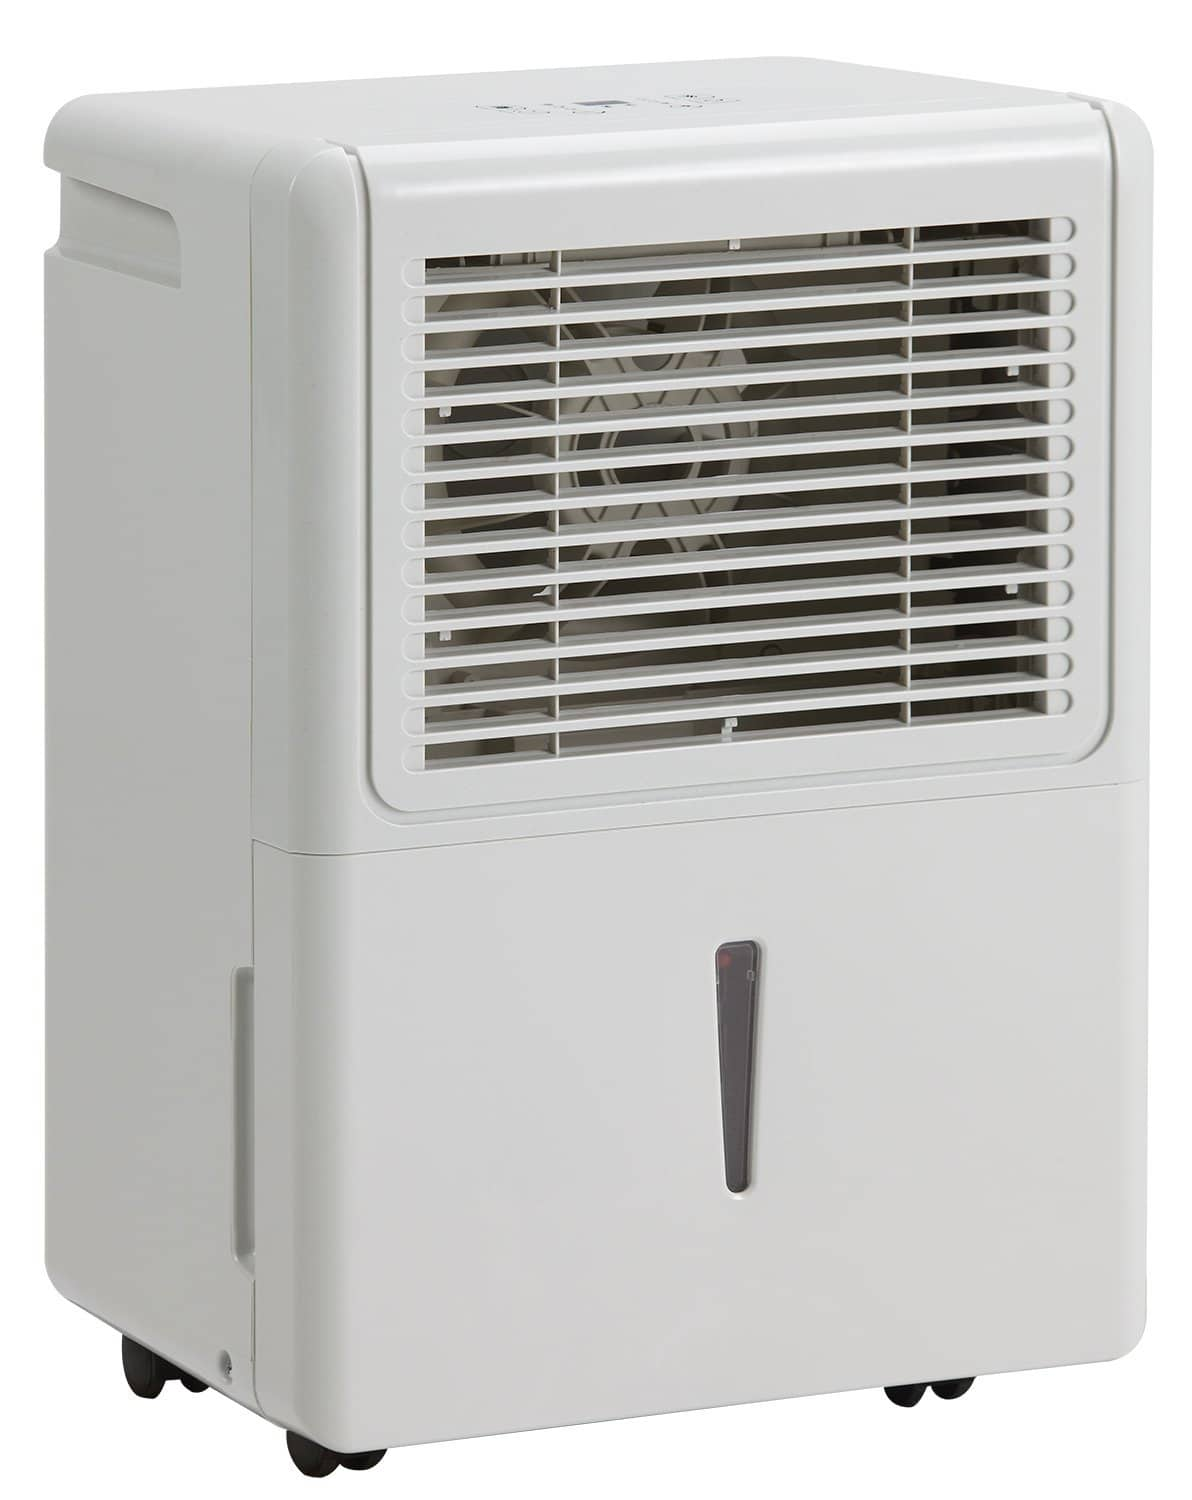 Arctic Aire ADR50B1G 50-Pint Dehumidifier: crawl space dehumidifier